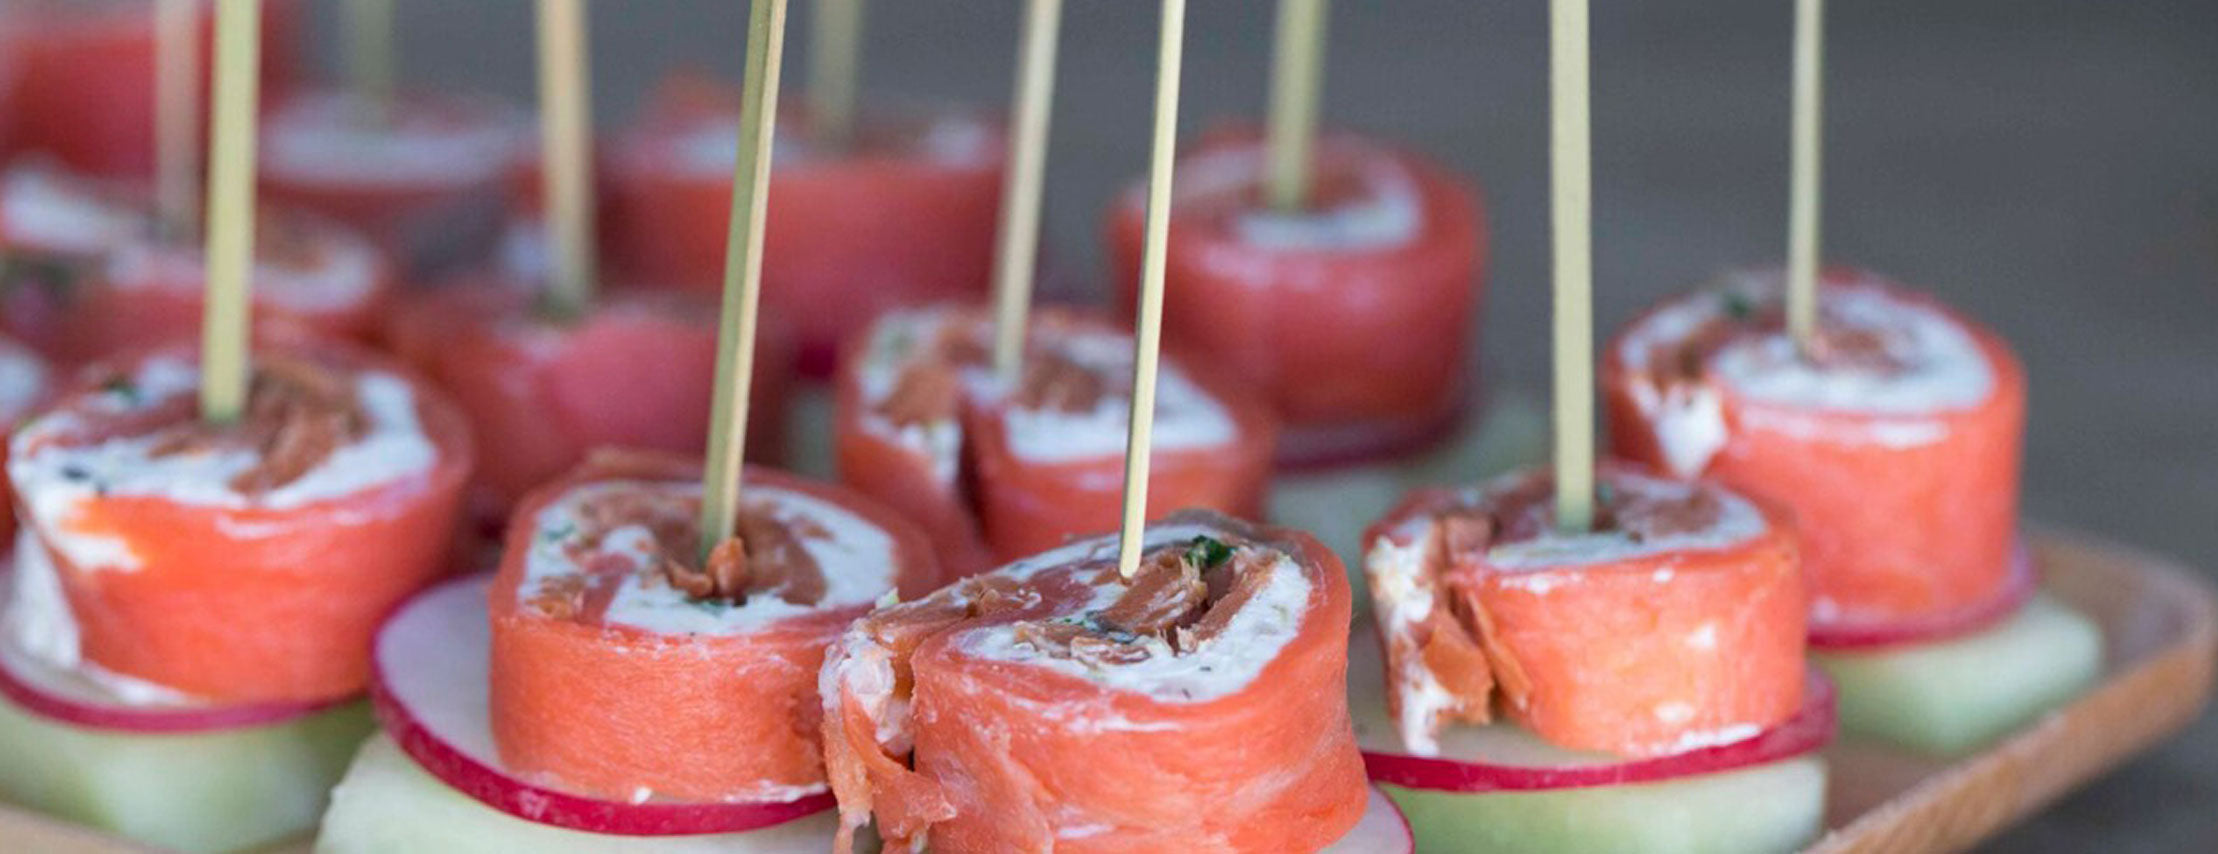 Recipe: Smoked Salmon Medallions